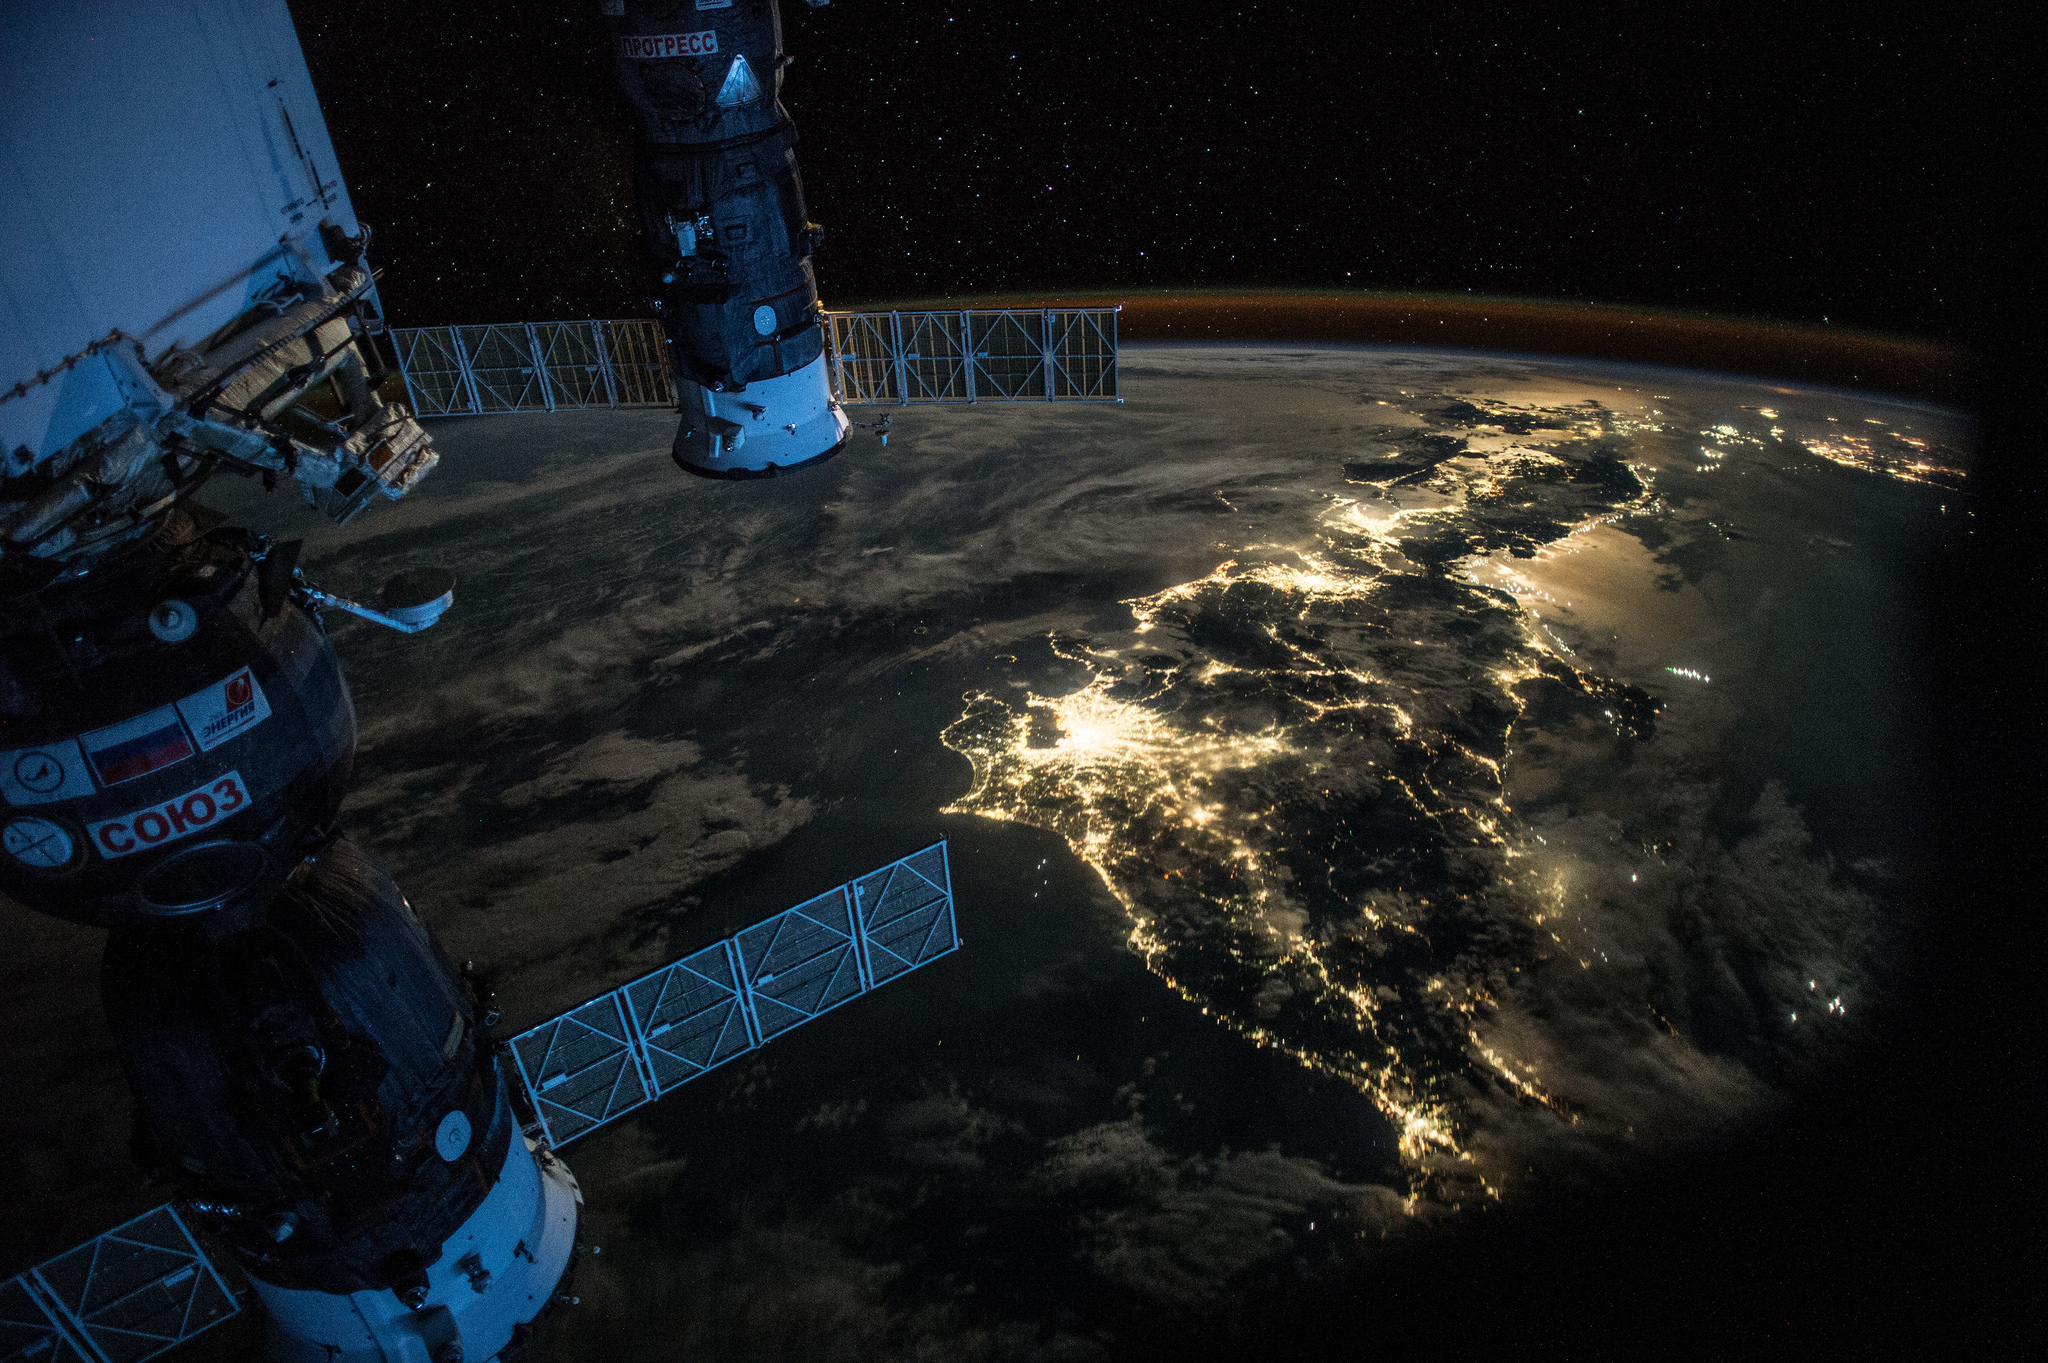 Night Earth Observation of Japan Taken by Expedition 44 Crewmember